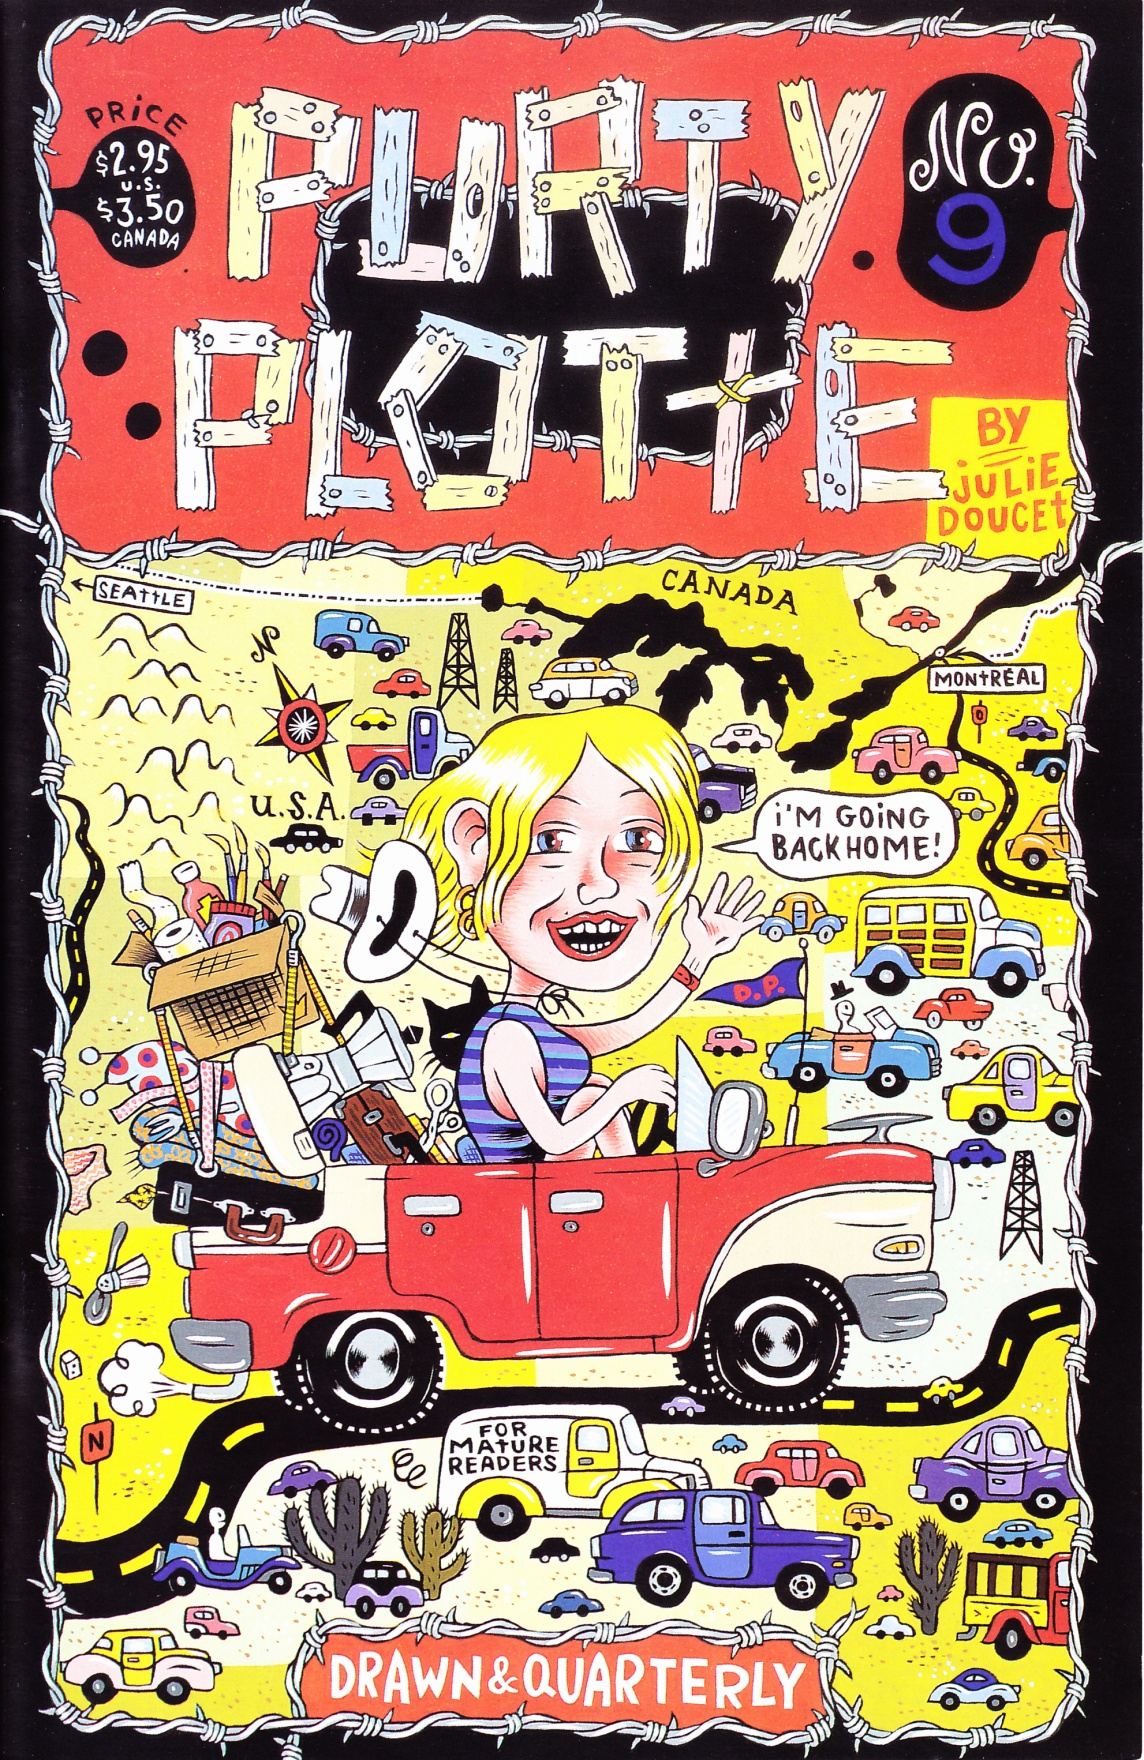 C:\Users\Robert\Documents\CARTOONING ILLUSTRATION ANIMATION\IMAGE BY CARTOONIST\D\DOUCETTE Julie, Purity Plotte, 9, Apr. 1995, fc.jpg